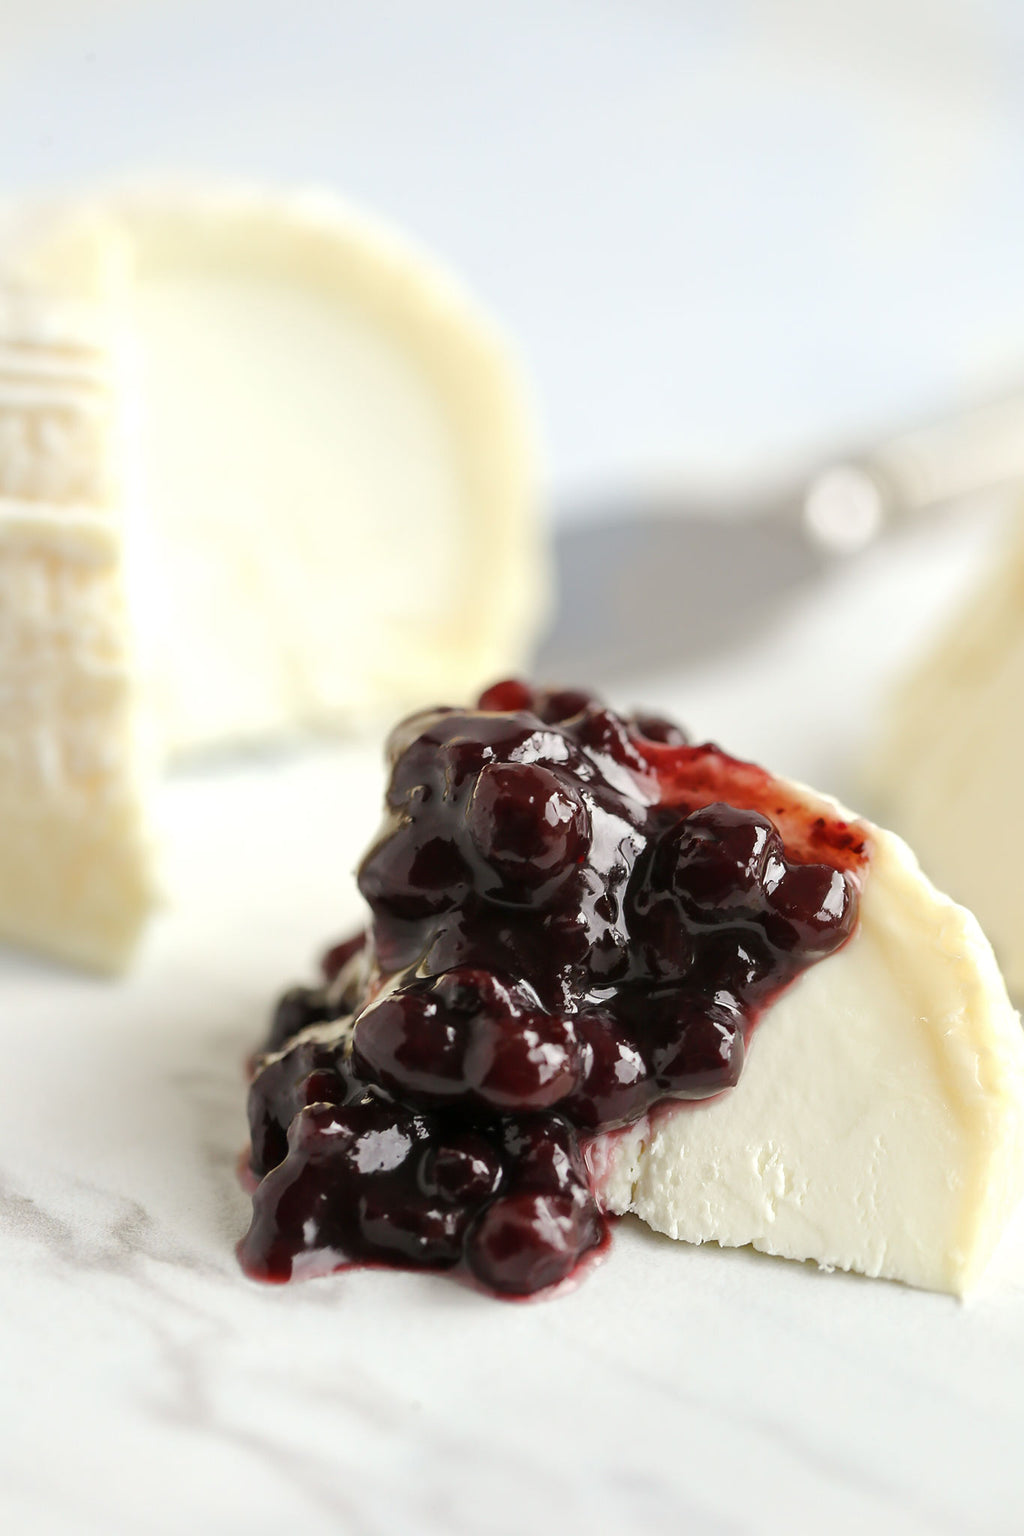 Goats Cheese and Blueberry Jam